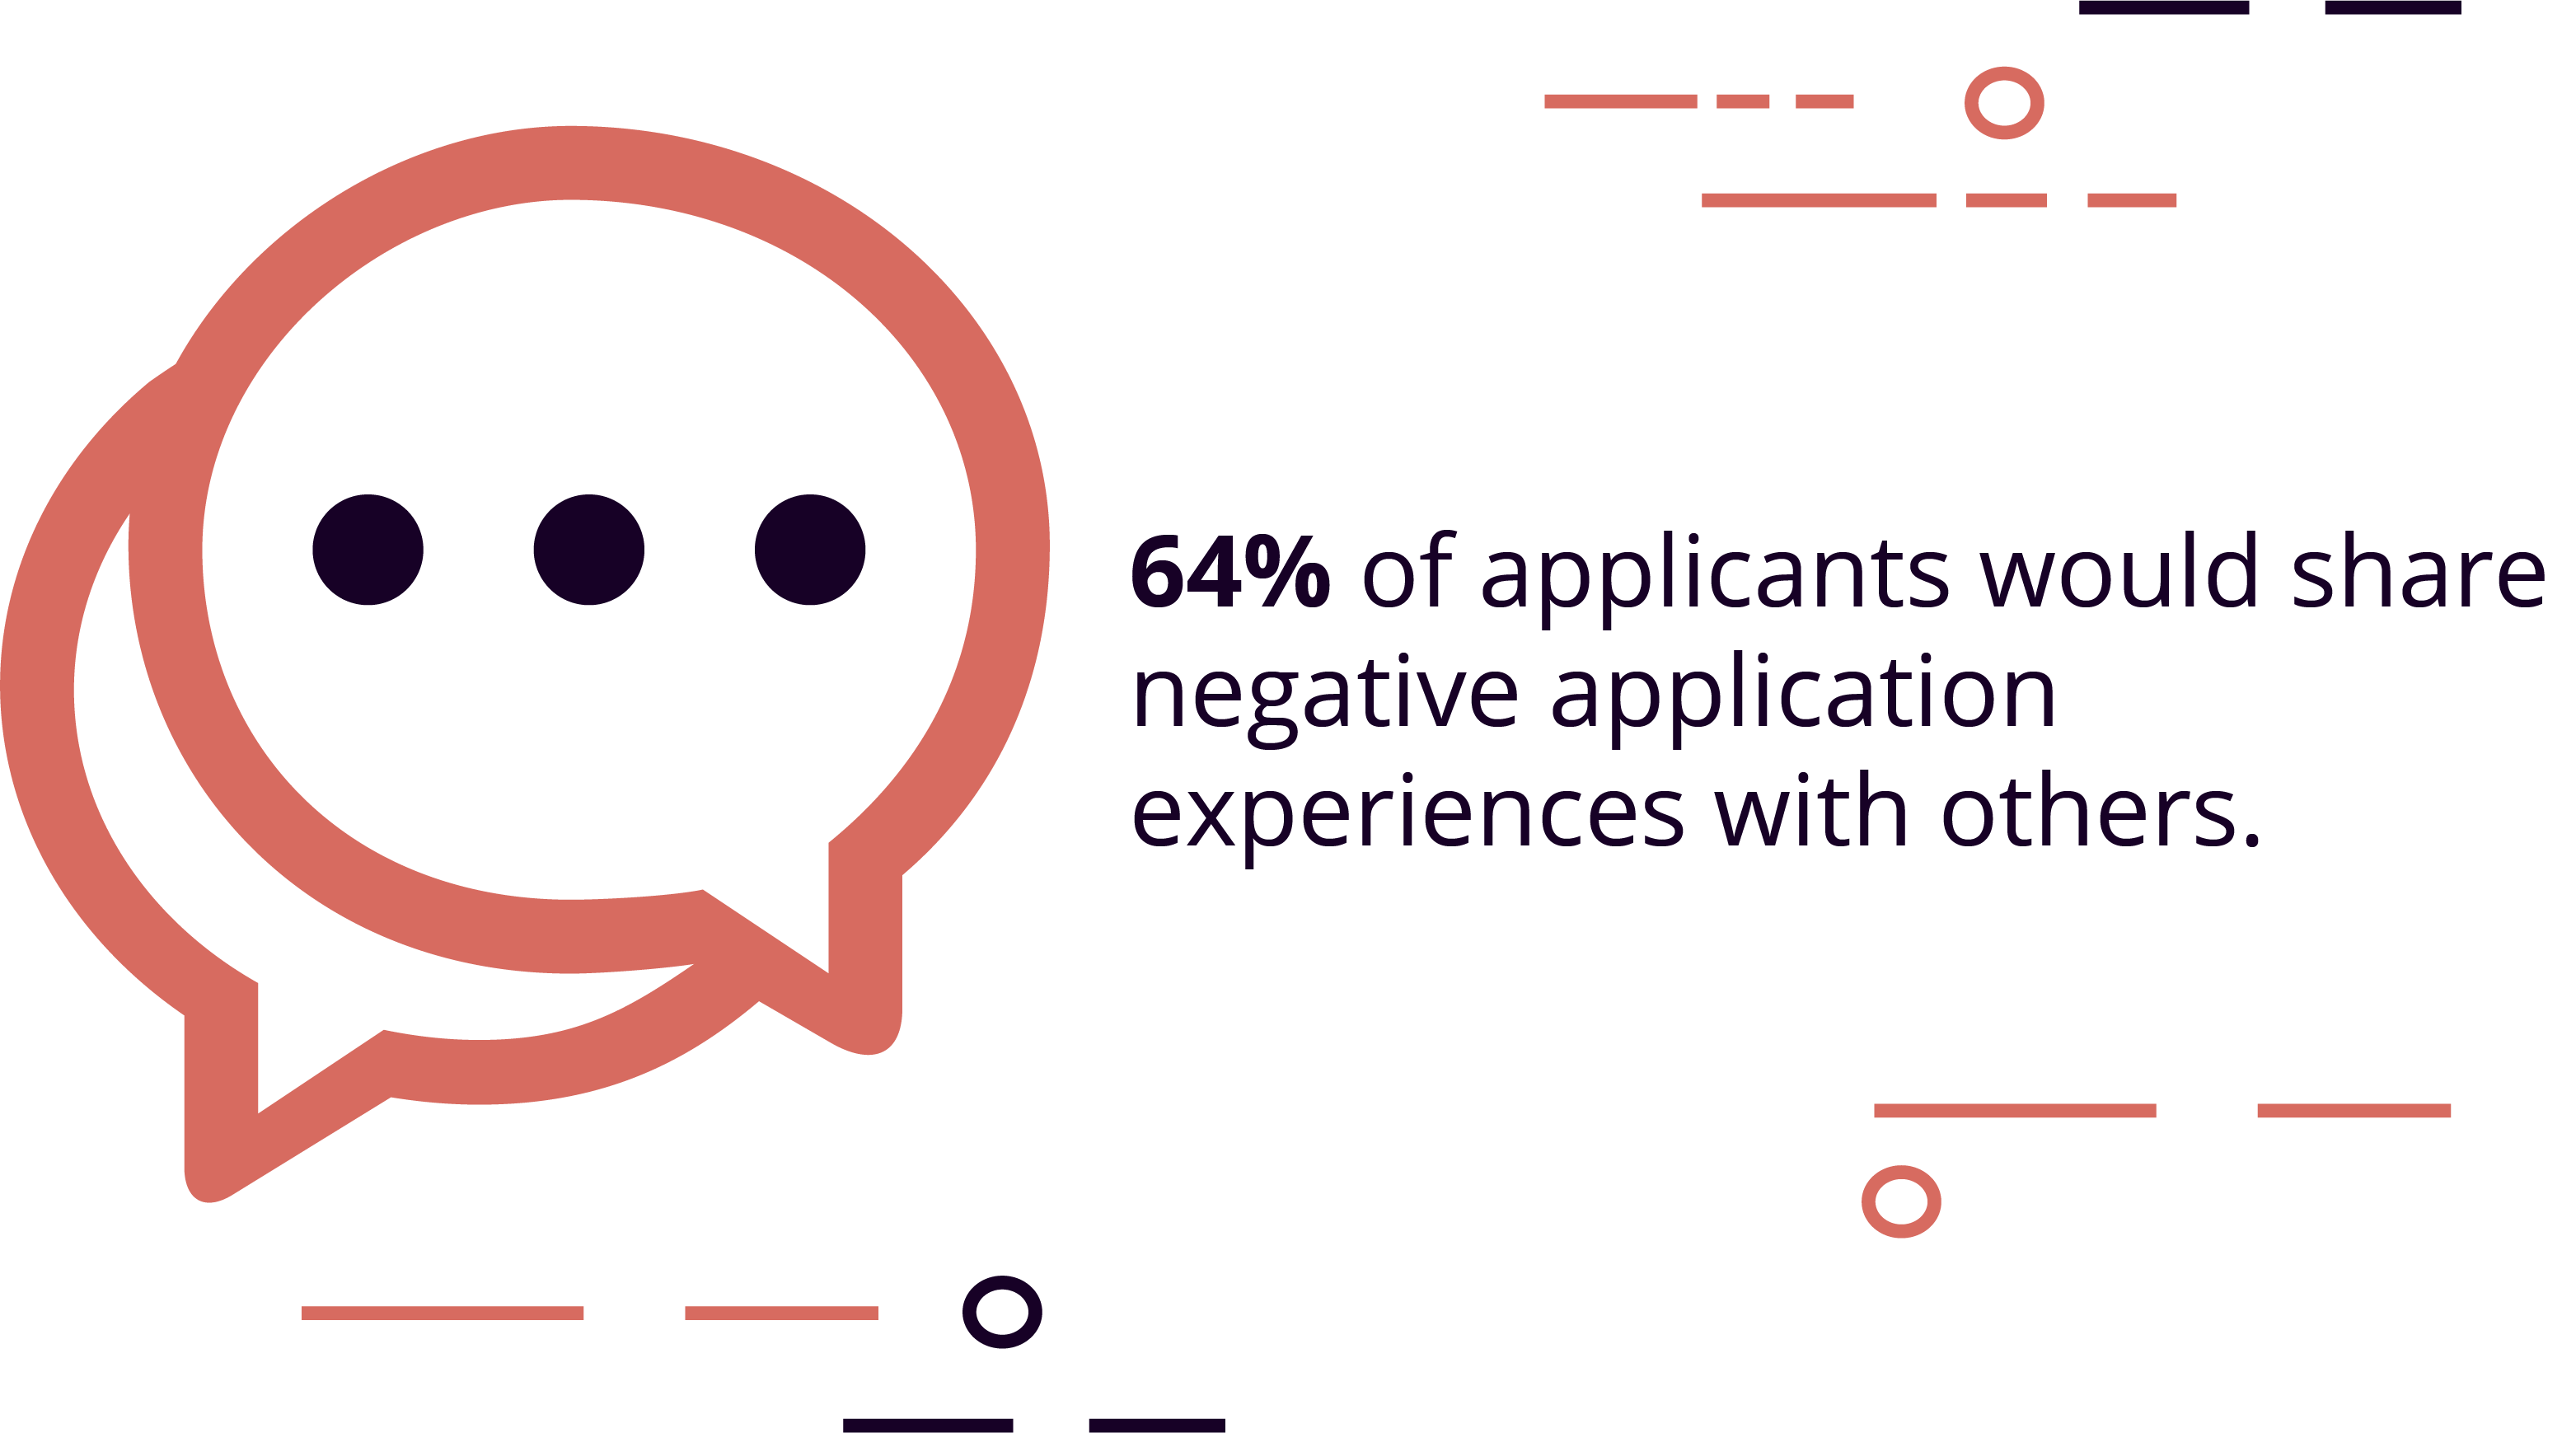 64% of applicants would share negative application experiences with others